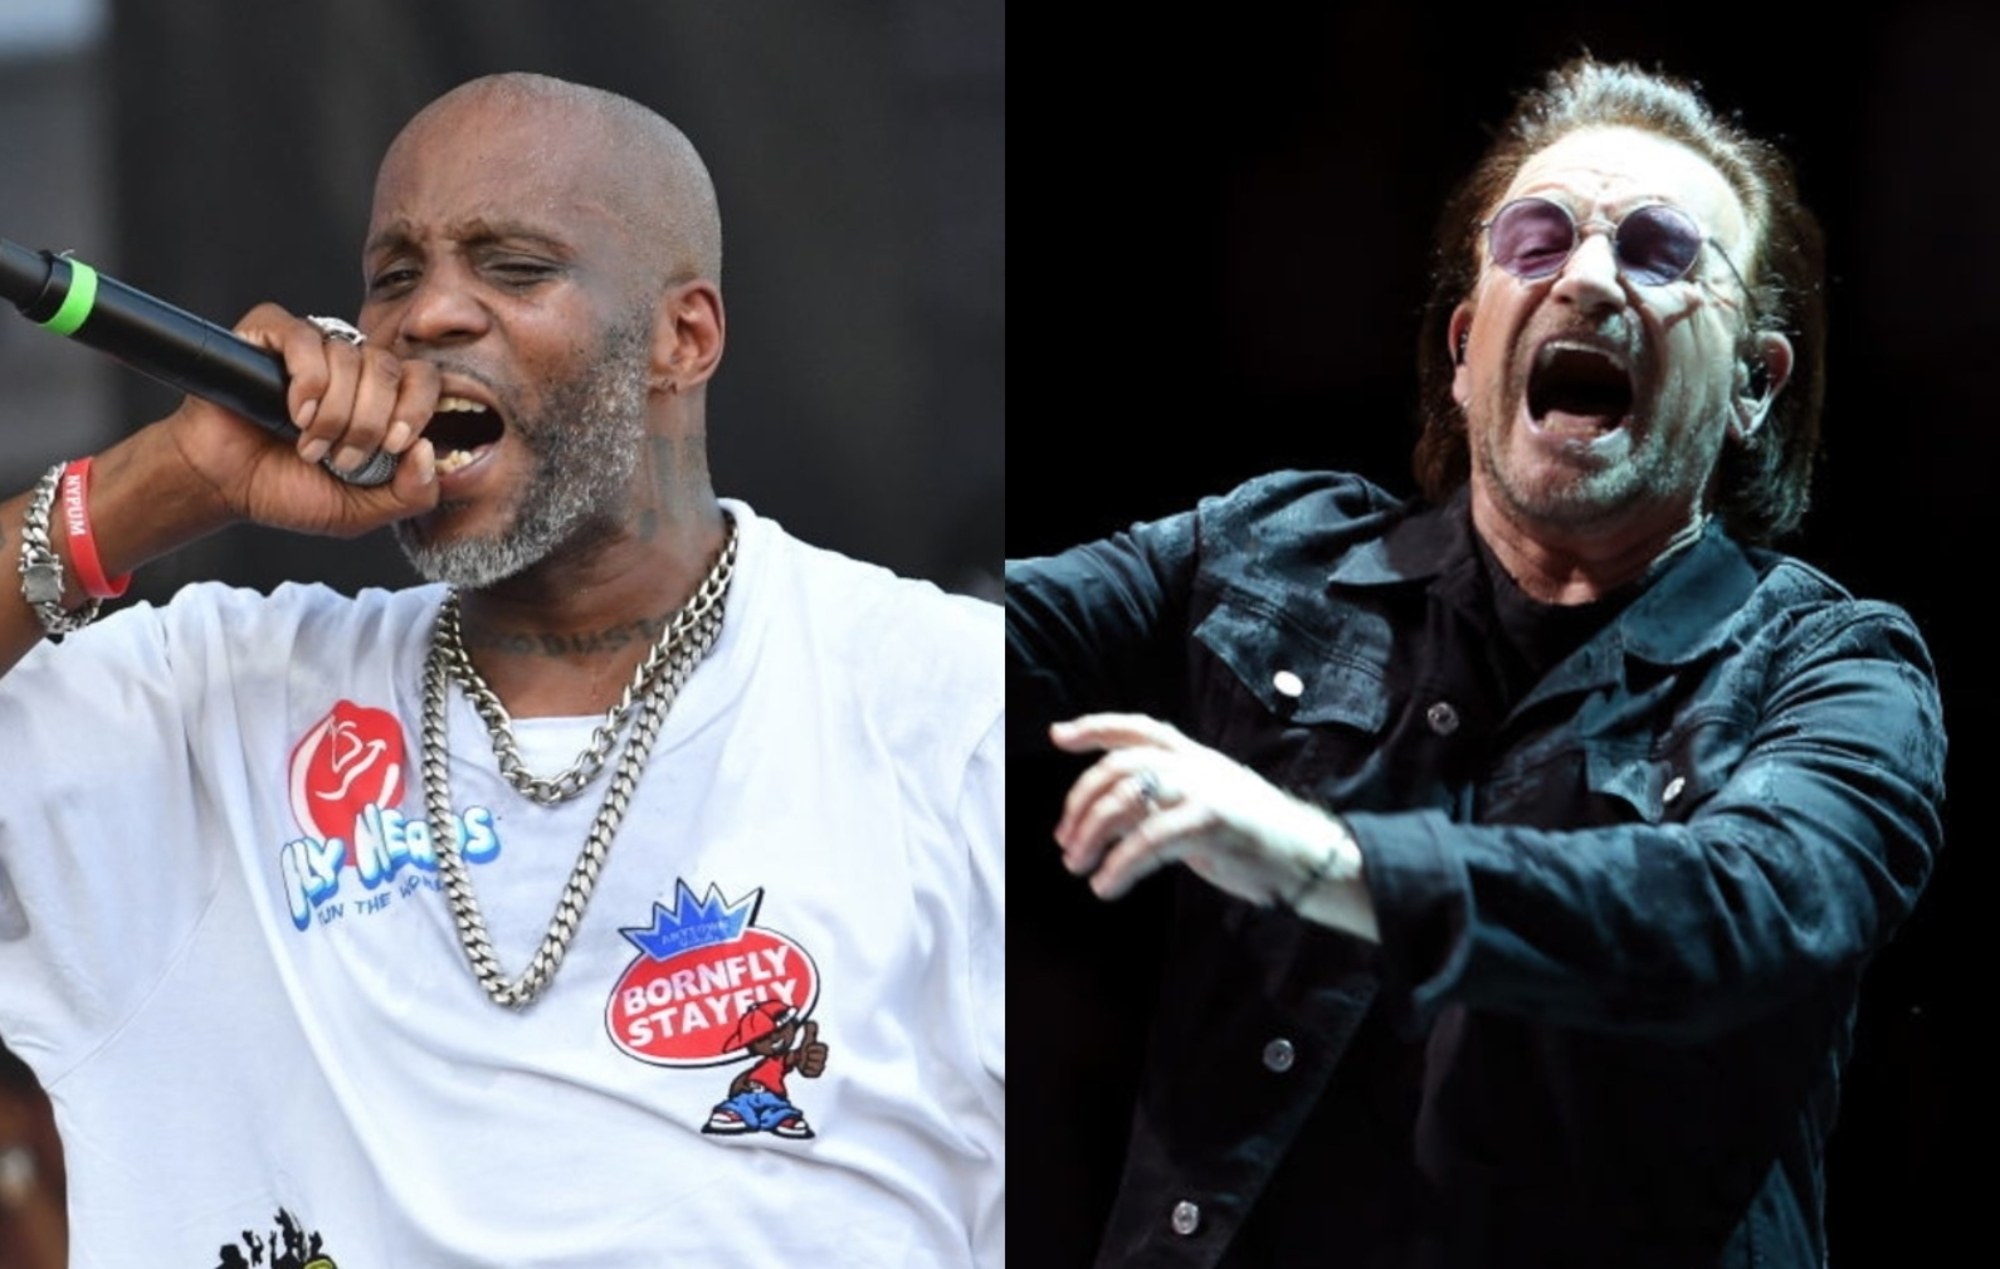 DMX says he has a collaboration with Bono on the way